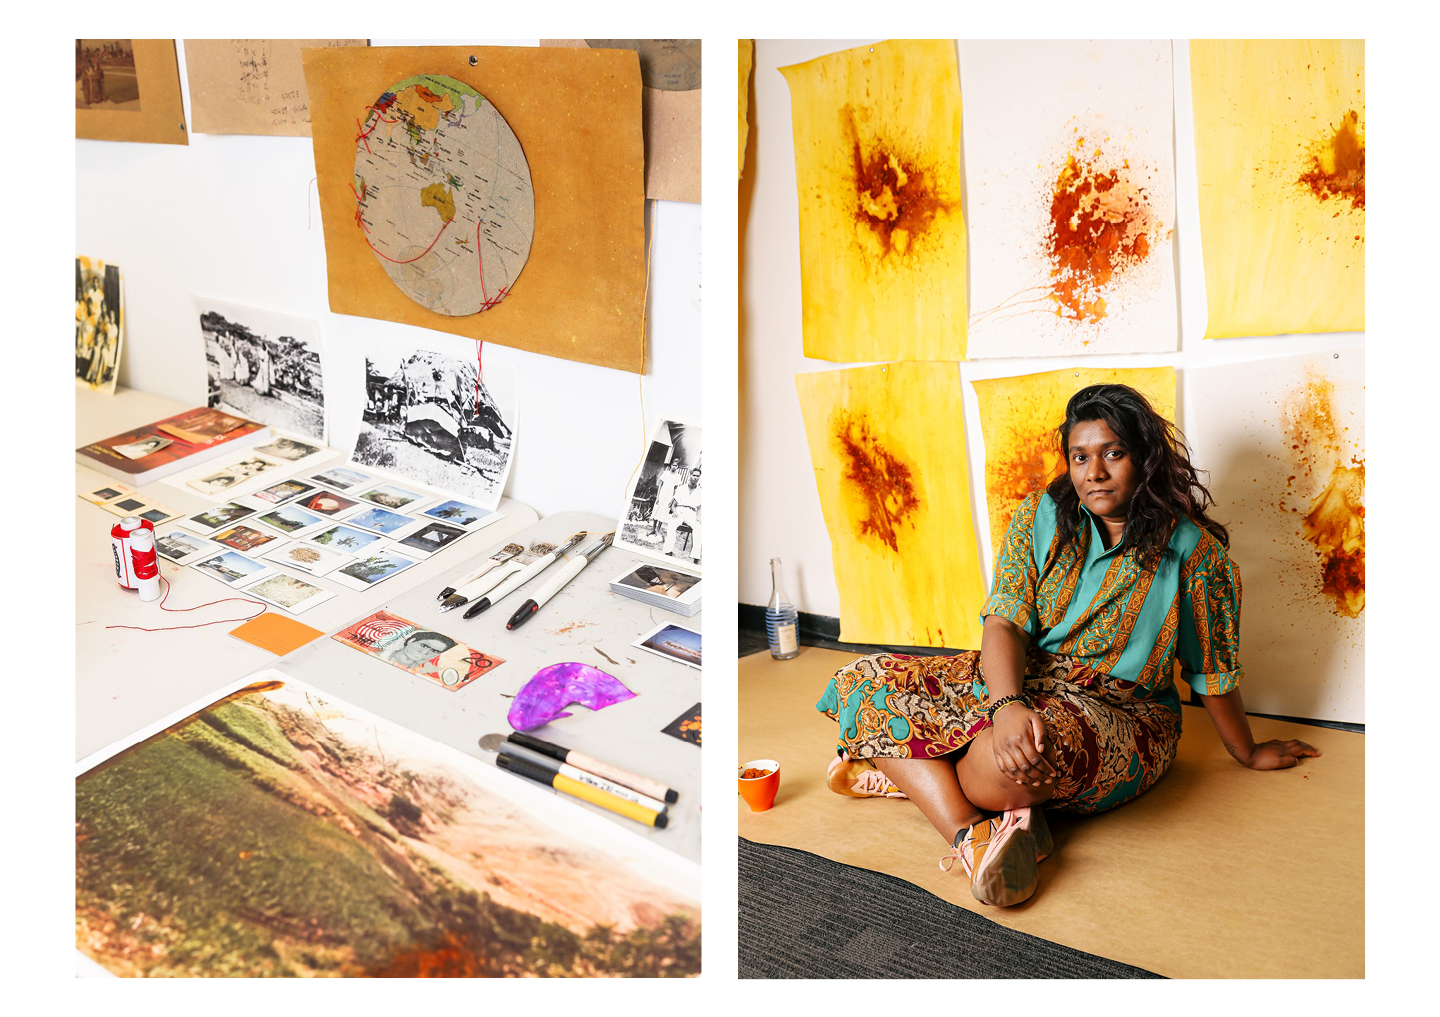 Shivanjani Lal_Photography by Jacquie Manning_Courtesy of Parramatta Artists Studios